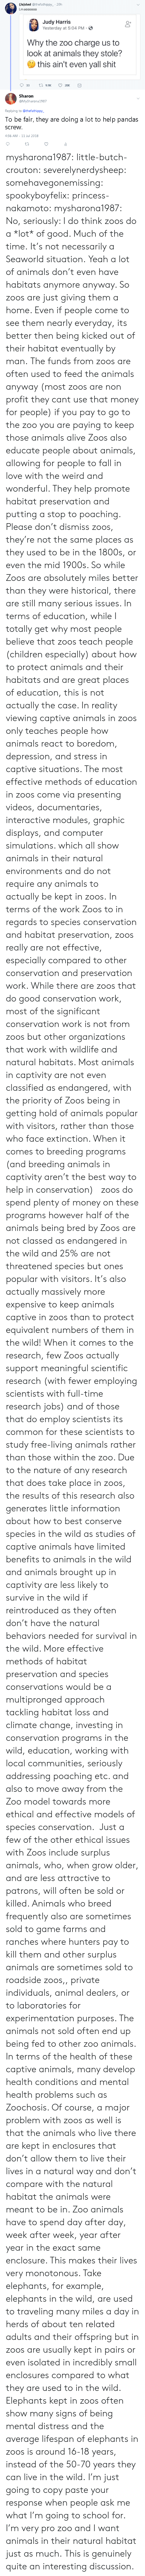 Alive, Animals, and Children: (Ja)ded @thefathippy 20h  maooo000  Judy Harris  Yesterday at 5:04 PM.  0+  Why the zoo charge us to  look at animals they stole?  this ain't even yall shit  Sharon  @MySharona1987  Replying to @thefathippy  To be fair, they are doing a lot to help pandas  screw.  4:56 AM- 11 Jul 2018 mysharona1987:  little-butch-crouton: severelynerdysheep:  somehavegonemissing:  spookyboyfelix:  princess-nakamoto:   mysharona1987:   No, seriously: I do think zoos do a *lot* of good. Much of the time. It's not necessarily a Seaworld situation.   Yeah a lot of animals don't even have habitats anymore anyway. So zoos are just giving them a home. Even if people come to see them nearly everyday, its better then being kicked out of their habitat eventually by man.   The funds from zoos are often used to feed the animals anyway (most zoos are non profit they cant use that money for people) if you pay to go to the zoo you are paying to keep those animals alive  Zoos also educate people about animals, allowing for people to fall in love with the weird and wonderful.  They help promote habitat preservation and putting a stop to poaching. Please don't dismiss zoos, they're not the same places as they used to be in the 1800s, or even the mid 1900s.   So while Zoos are absolutely miles better than they were historical, there are still many serious issues. In terms of education, while I totally get why most people believe that zoos teach people (children especially) about how to protect animals and their habitats and are great places of education, this is not actually the case. In reality viewing captive animals in zoos only teaches people how animals react to boredom, depression, and stress in captive situations. The most effective methods of education in zoos come via presenting videos, documentaries, interactive modules, graphic displays, and computer simulations. which all show animals in their natural environments and do not require any animals to actually be kept in zoos. In terms of the work Zoos to in regards to species conservation and habitat preservation, zoos really are not effective, especially compared to other conservation and preservation work. While there are zoos that do good conservation work, most of the significant conservation work is not from zoos but other organizations that work with wildlife and natural habitats. Most animals in captivity are not even classified as endangered, with the priority of Zoos being in getting hold of animals popular with visitors, rather than those who face extinction. When it comes to breeding programs (and breeding animals in captivity aren't the best way to help in conservation)   zoos do spend plenty of money on these programs however half of the animals being bred by Zoos are not classed as endangered in the wild and 25% are not threatened species but ones popular with visitors. It's also actually massively more expensive to keep animals captive in zoos than to protect equivalent numbers of them in the wild! When it comes to the research, few Zoos actually support meaningful scientific research (with fewer employing scientists with full-time research jobs) and of those that do employ scientists its common for these scientists to study free-living animals rather than those within the zoo. Due to the nature of any research that does take place in zoos, the results of this research also generates little information about how to best conserve species in the wild as studies of captive animals have limited benefits to animals in the wild and animals brought up in captivity are less likely to survive in the wild if reintroduced as they often don't have the natural behaviors needed for survival in the wild. More effective methods of habitat preservation and species conservations would be a multipronged approach tackling habitat loss and climate change, investing in conservation programs in the wild, education, working with local communities, seriously addressing poaching etc. and also to move away from the Zoo model towards more ethical and effective models of species conservation.  Just a few of the other ethical issues with Zoos include surplus animals, who, when grow older, and are less attractive to patrons, will often be sold or killed. Animals who breed frequently also are sometimes sold to game farms and ranches where hunters pay to kill them and other surplus animals are sometimes sold to roadside zoos,, private individuals, animal dealers, or to laboratories for experimentation purposes. The animals not sold often end up being fed to other zoo animals. In terms of the health of these captive animals, many develop health conditions and mental health problems such as Zoochosis. Of course, a major problem with zoos as well is that the animals who live there are kept in enclosures that don't allow them to live their lives in a natural way and don't compare with the natural habitat the animals were meant to be in. Zoo animals have to spend day after day, week after week, year after year in the exact same enclosure. This makes their lives very monotonous. Take elephants, for example, elephants in the wild, are used to traveling many miles a day in herds of about ten related adults and their offspring but in zoos are usually kept in pairs or even isolated in incredibly small enclosures compared to what they are used to in the wild. Elephants kept in zoos often show many signs of being mental distress and the average lifespan of elephants in zoos is around 16-18 years, instead of the 50-70 years they can live in the wild.   I'm just going to copy paste your response when people ask me what I'm going to school for. I'm very pro zoo and I want animals in their natural habitat just as much.  This is genuinely quite an interesting discussion.